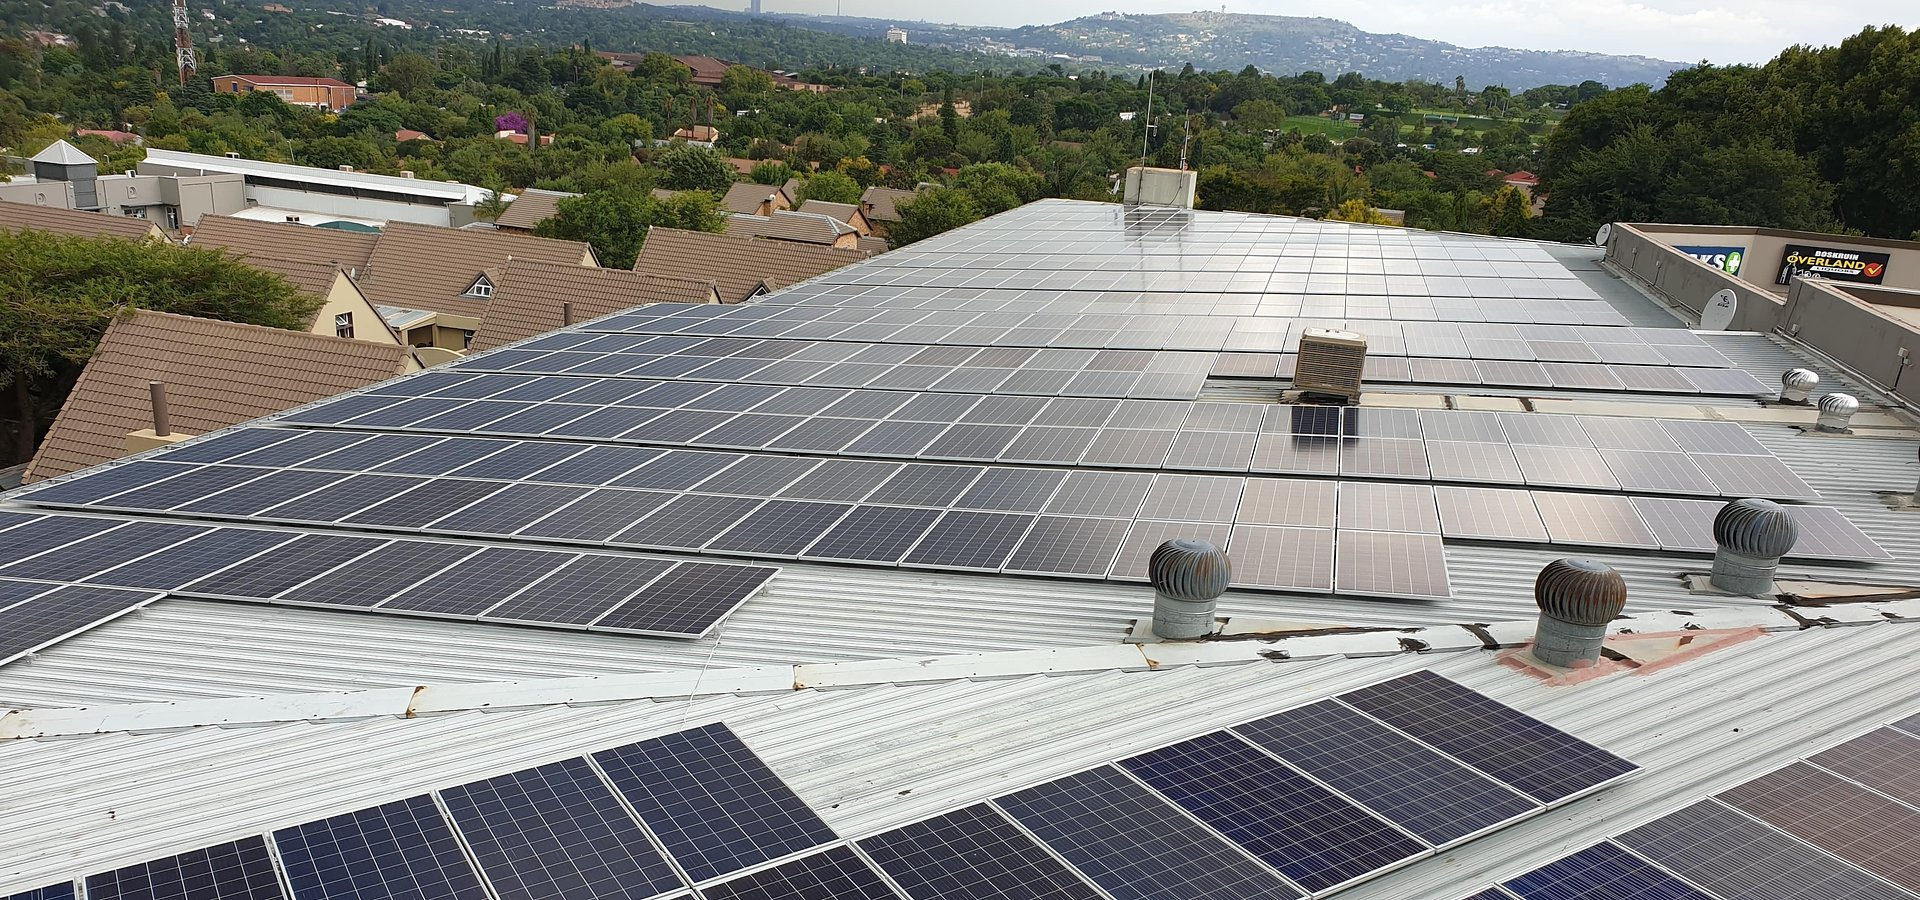 Emira is powering business the sustainable way